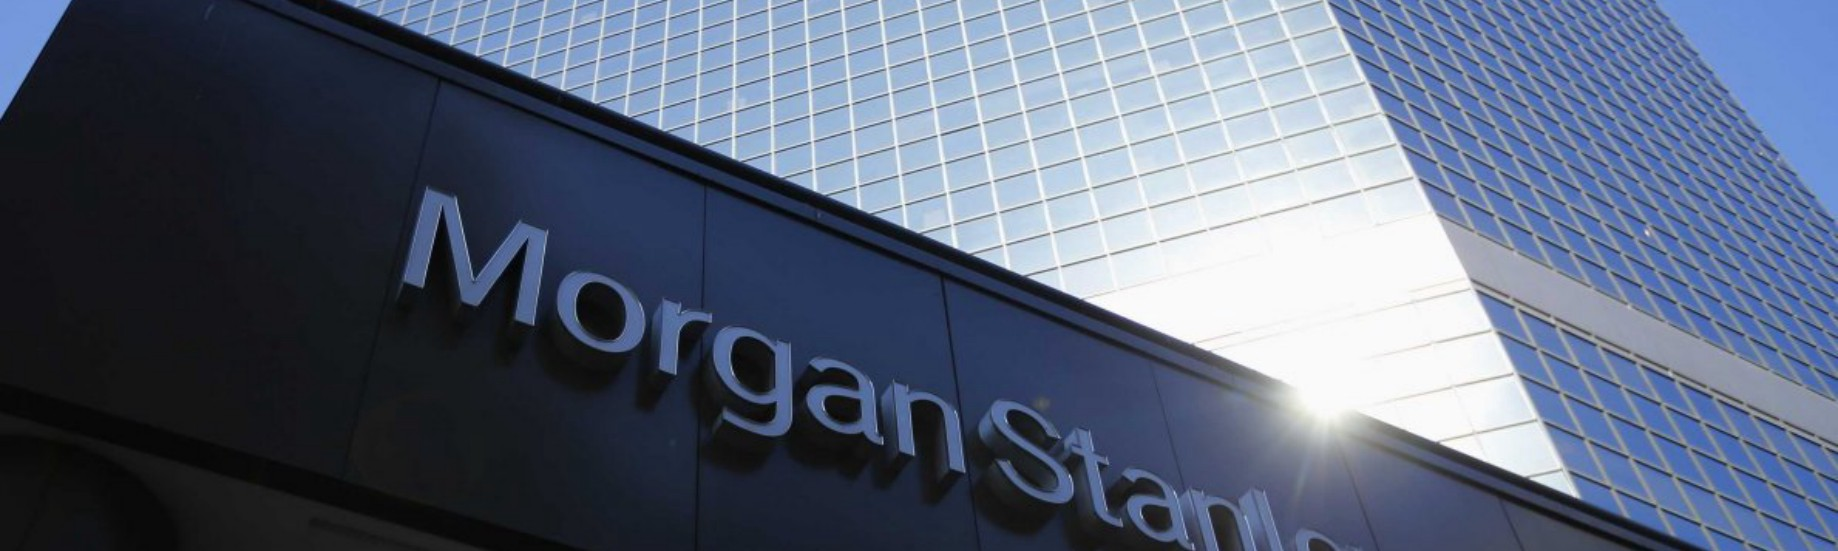 Eight months at Morgan Stanley- Things I learnt in my Internship